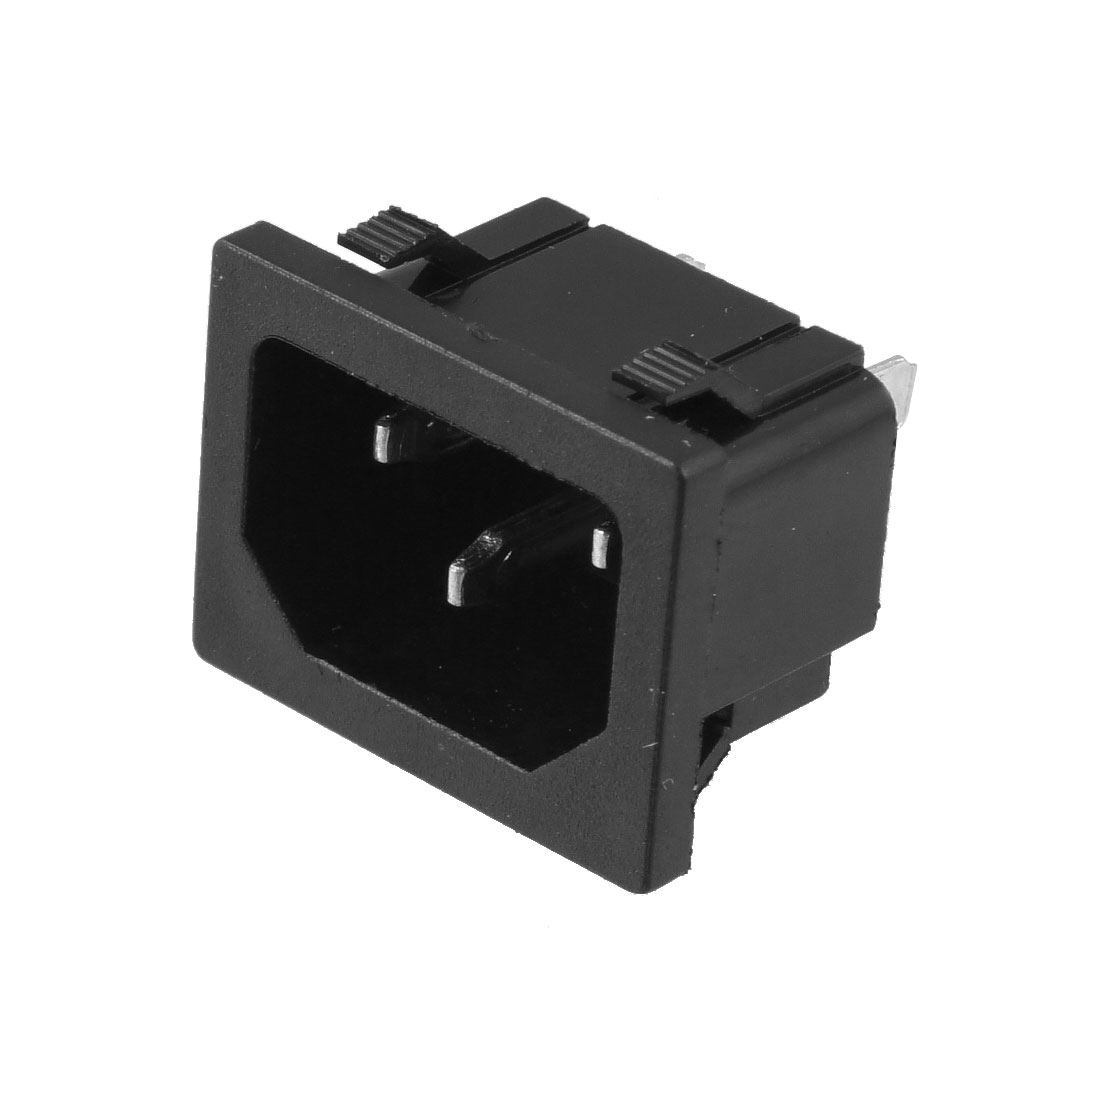 Black 3 Terminals IEC320 C14 Inlet Connector Power Socket AC 250V 10A